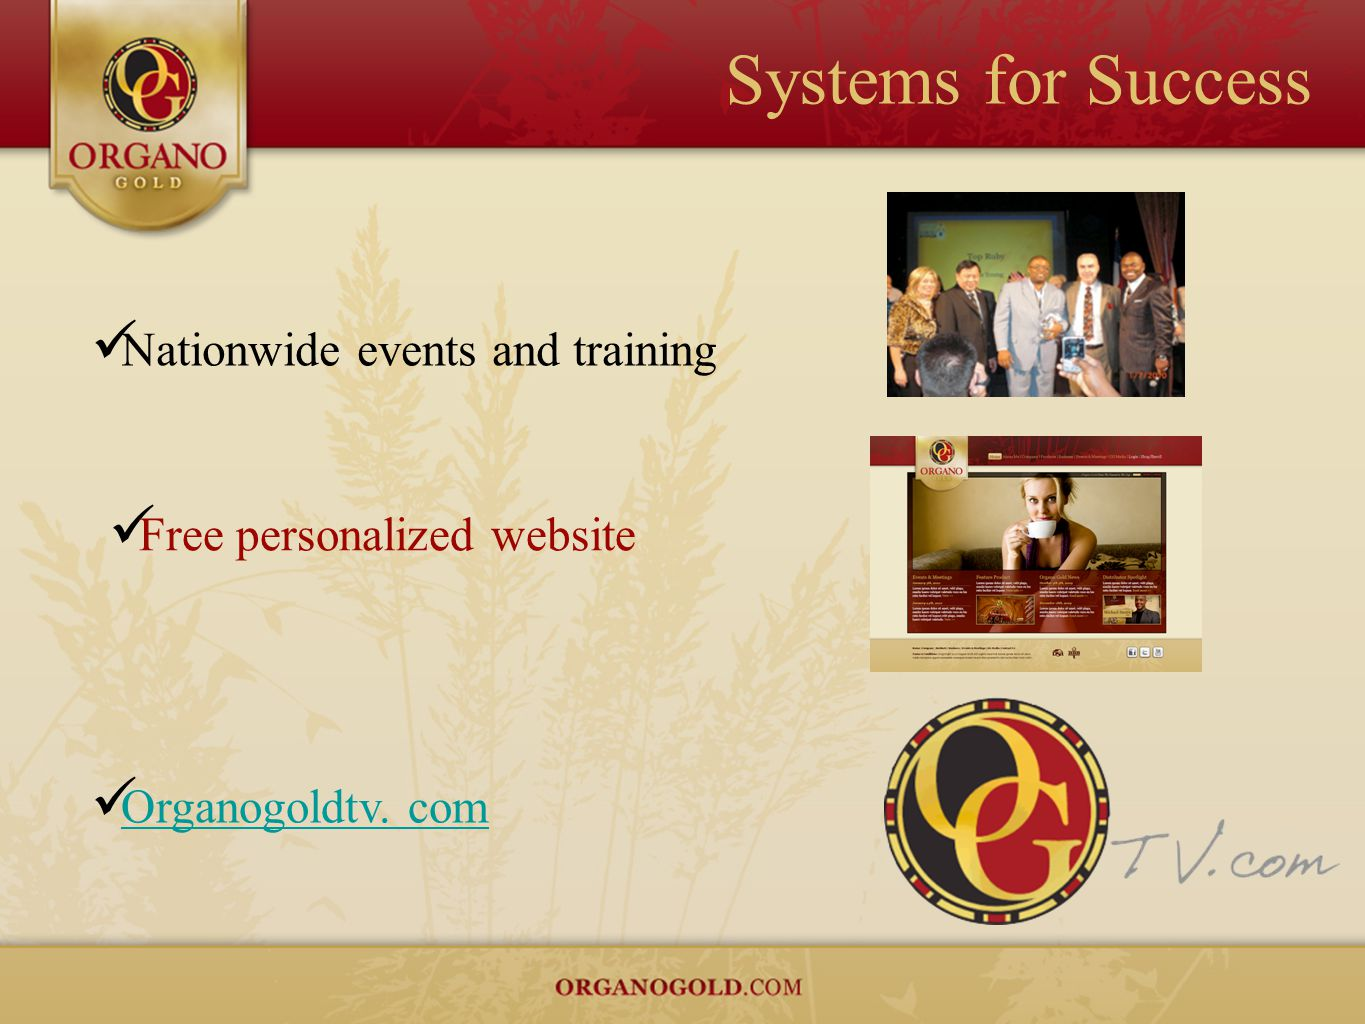 Free personalized website